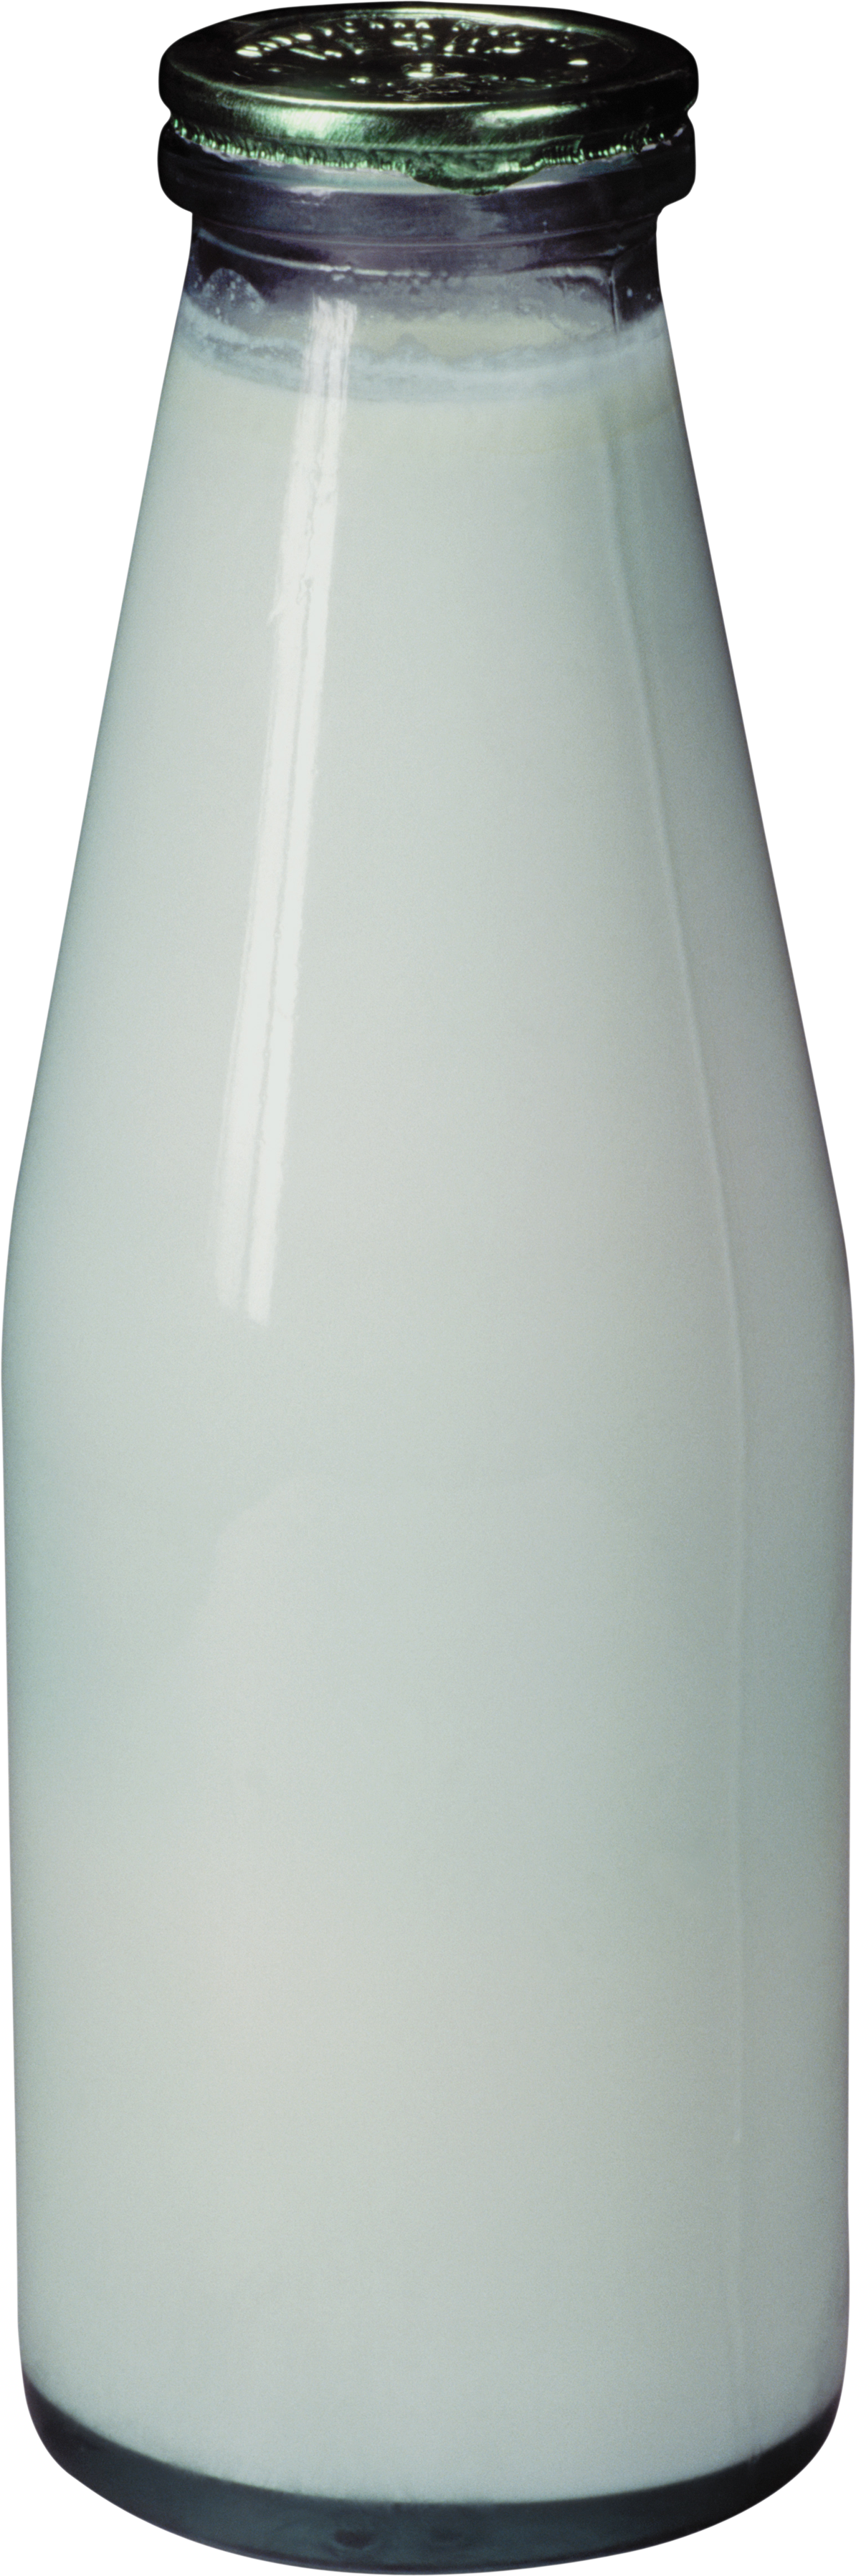 kefir bottle glass PNG